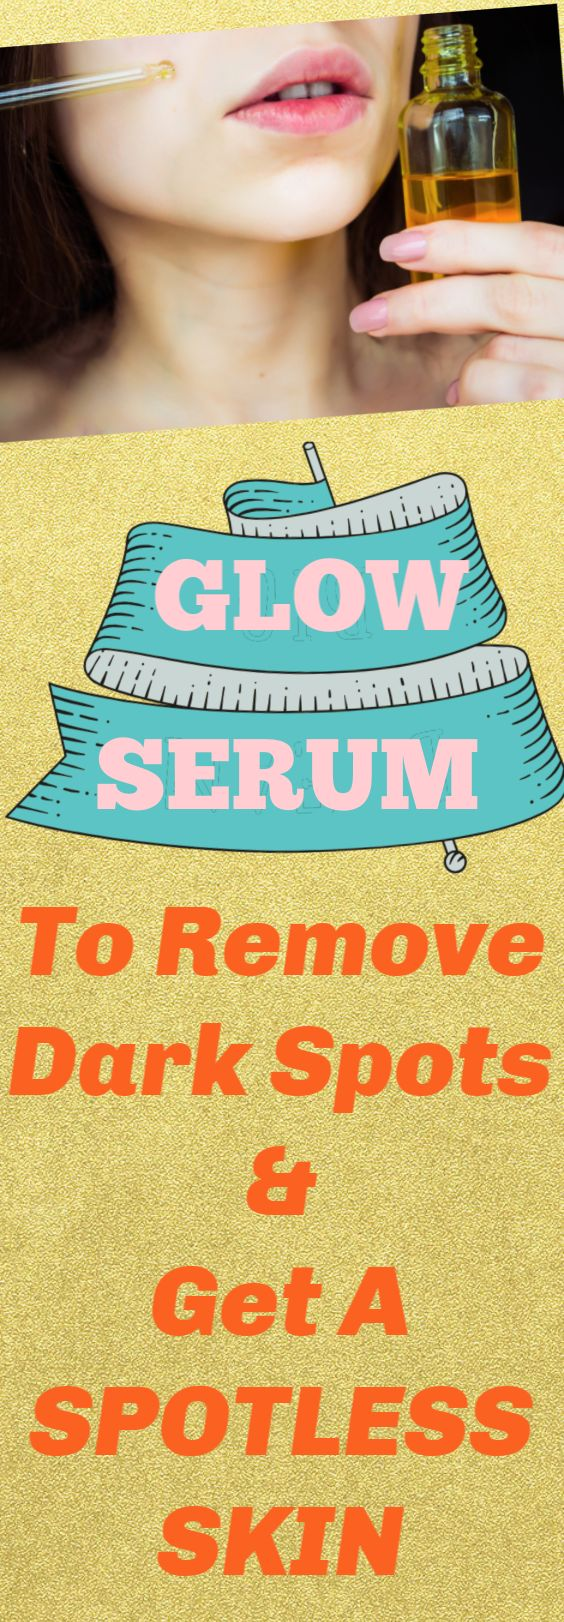 Remedy To Remove Dark Spots Get Spotless Skin With Glow Serum